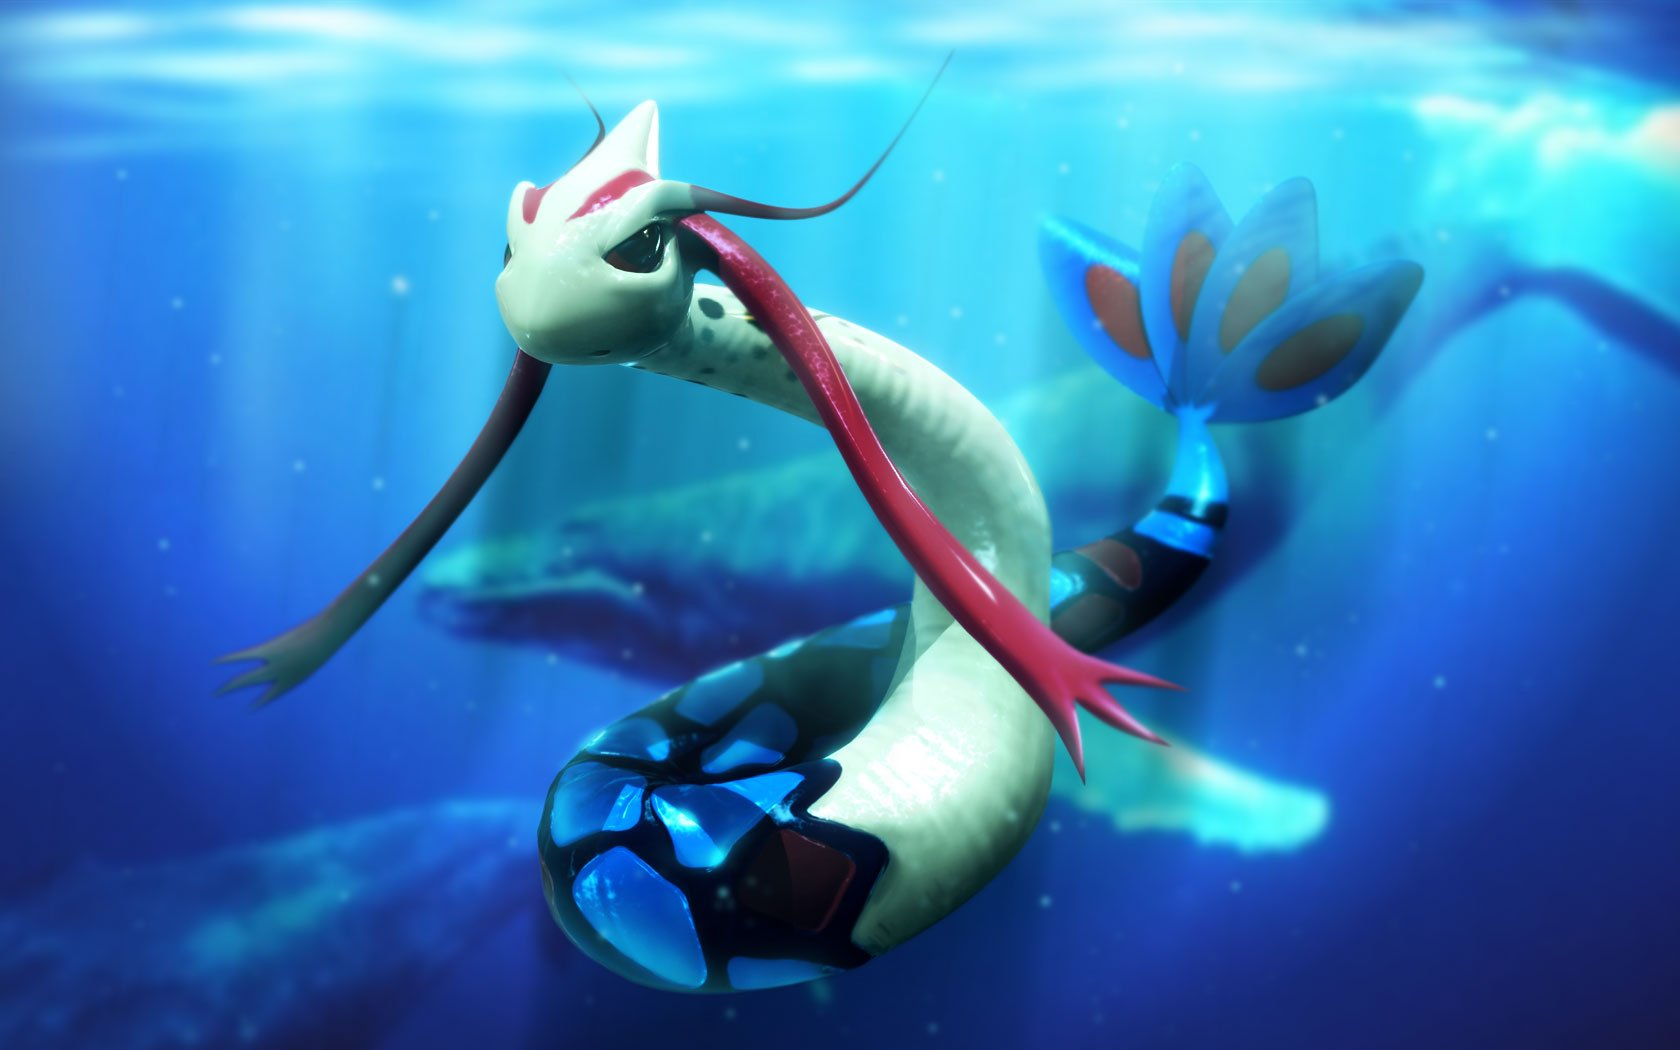 Incredible 3D Pokemon Renders That Will Blow You Away - Ranker 3d pictures of pokemon